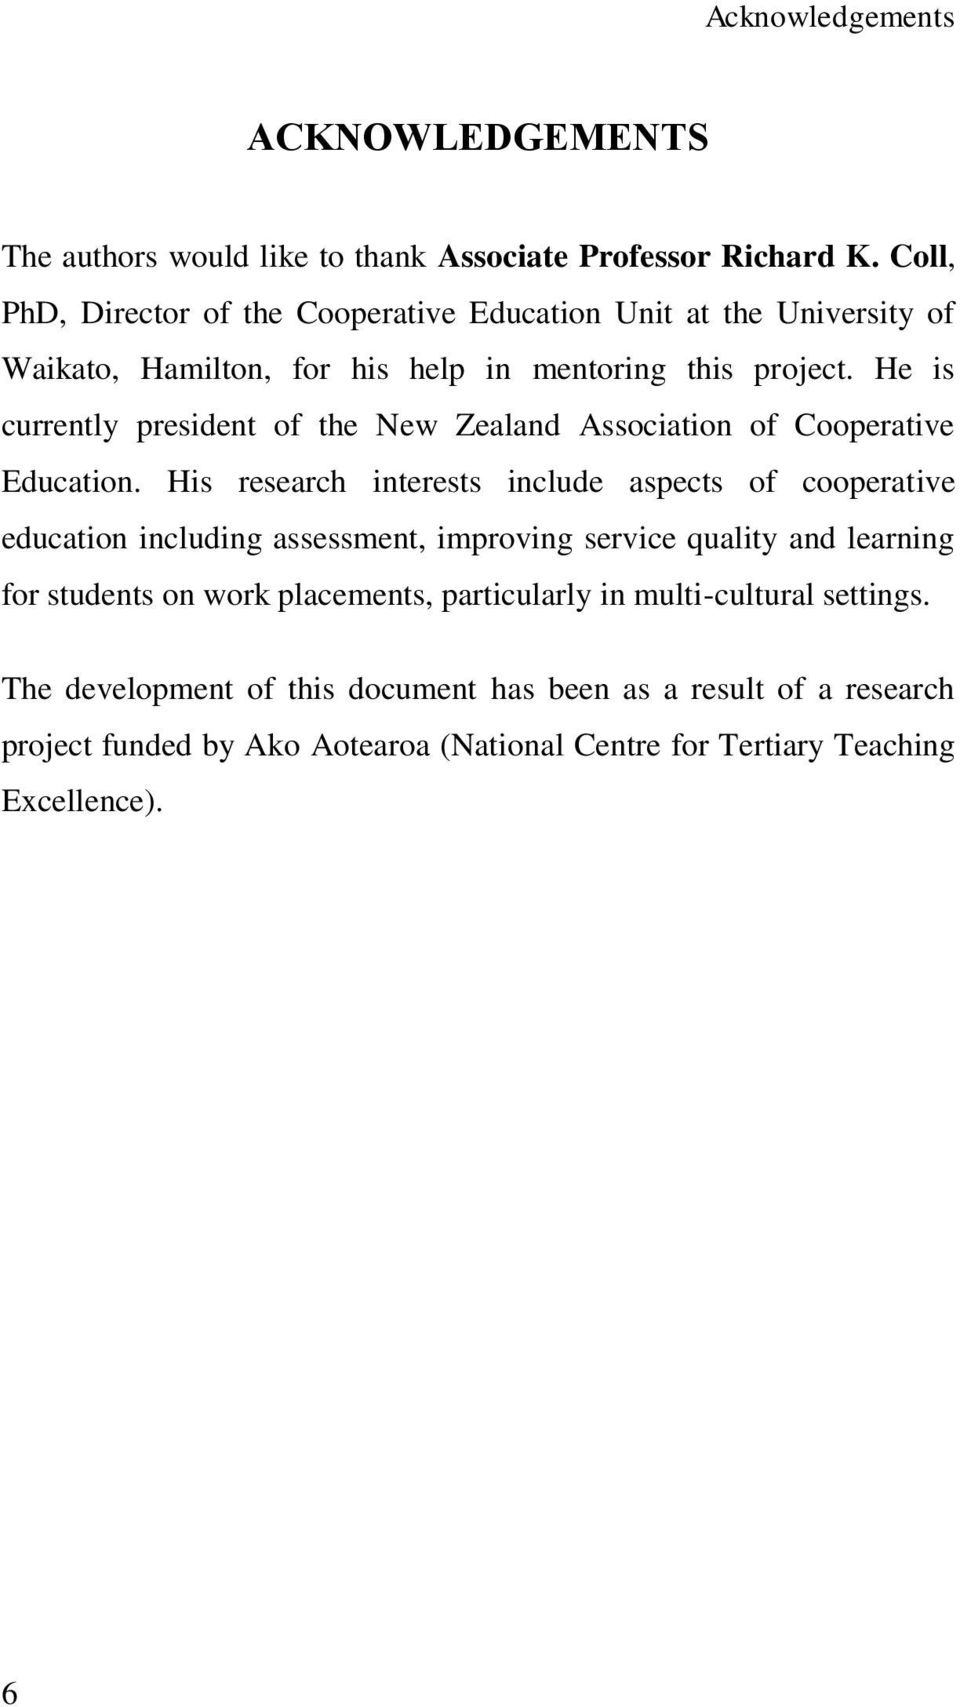 He is currently president of the New Zealand Association of Cooperative Education.